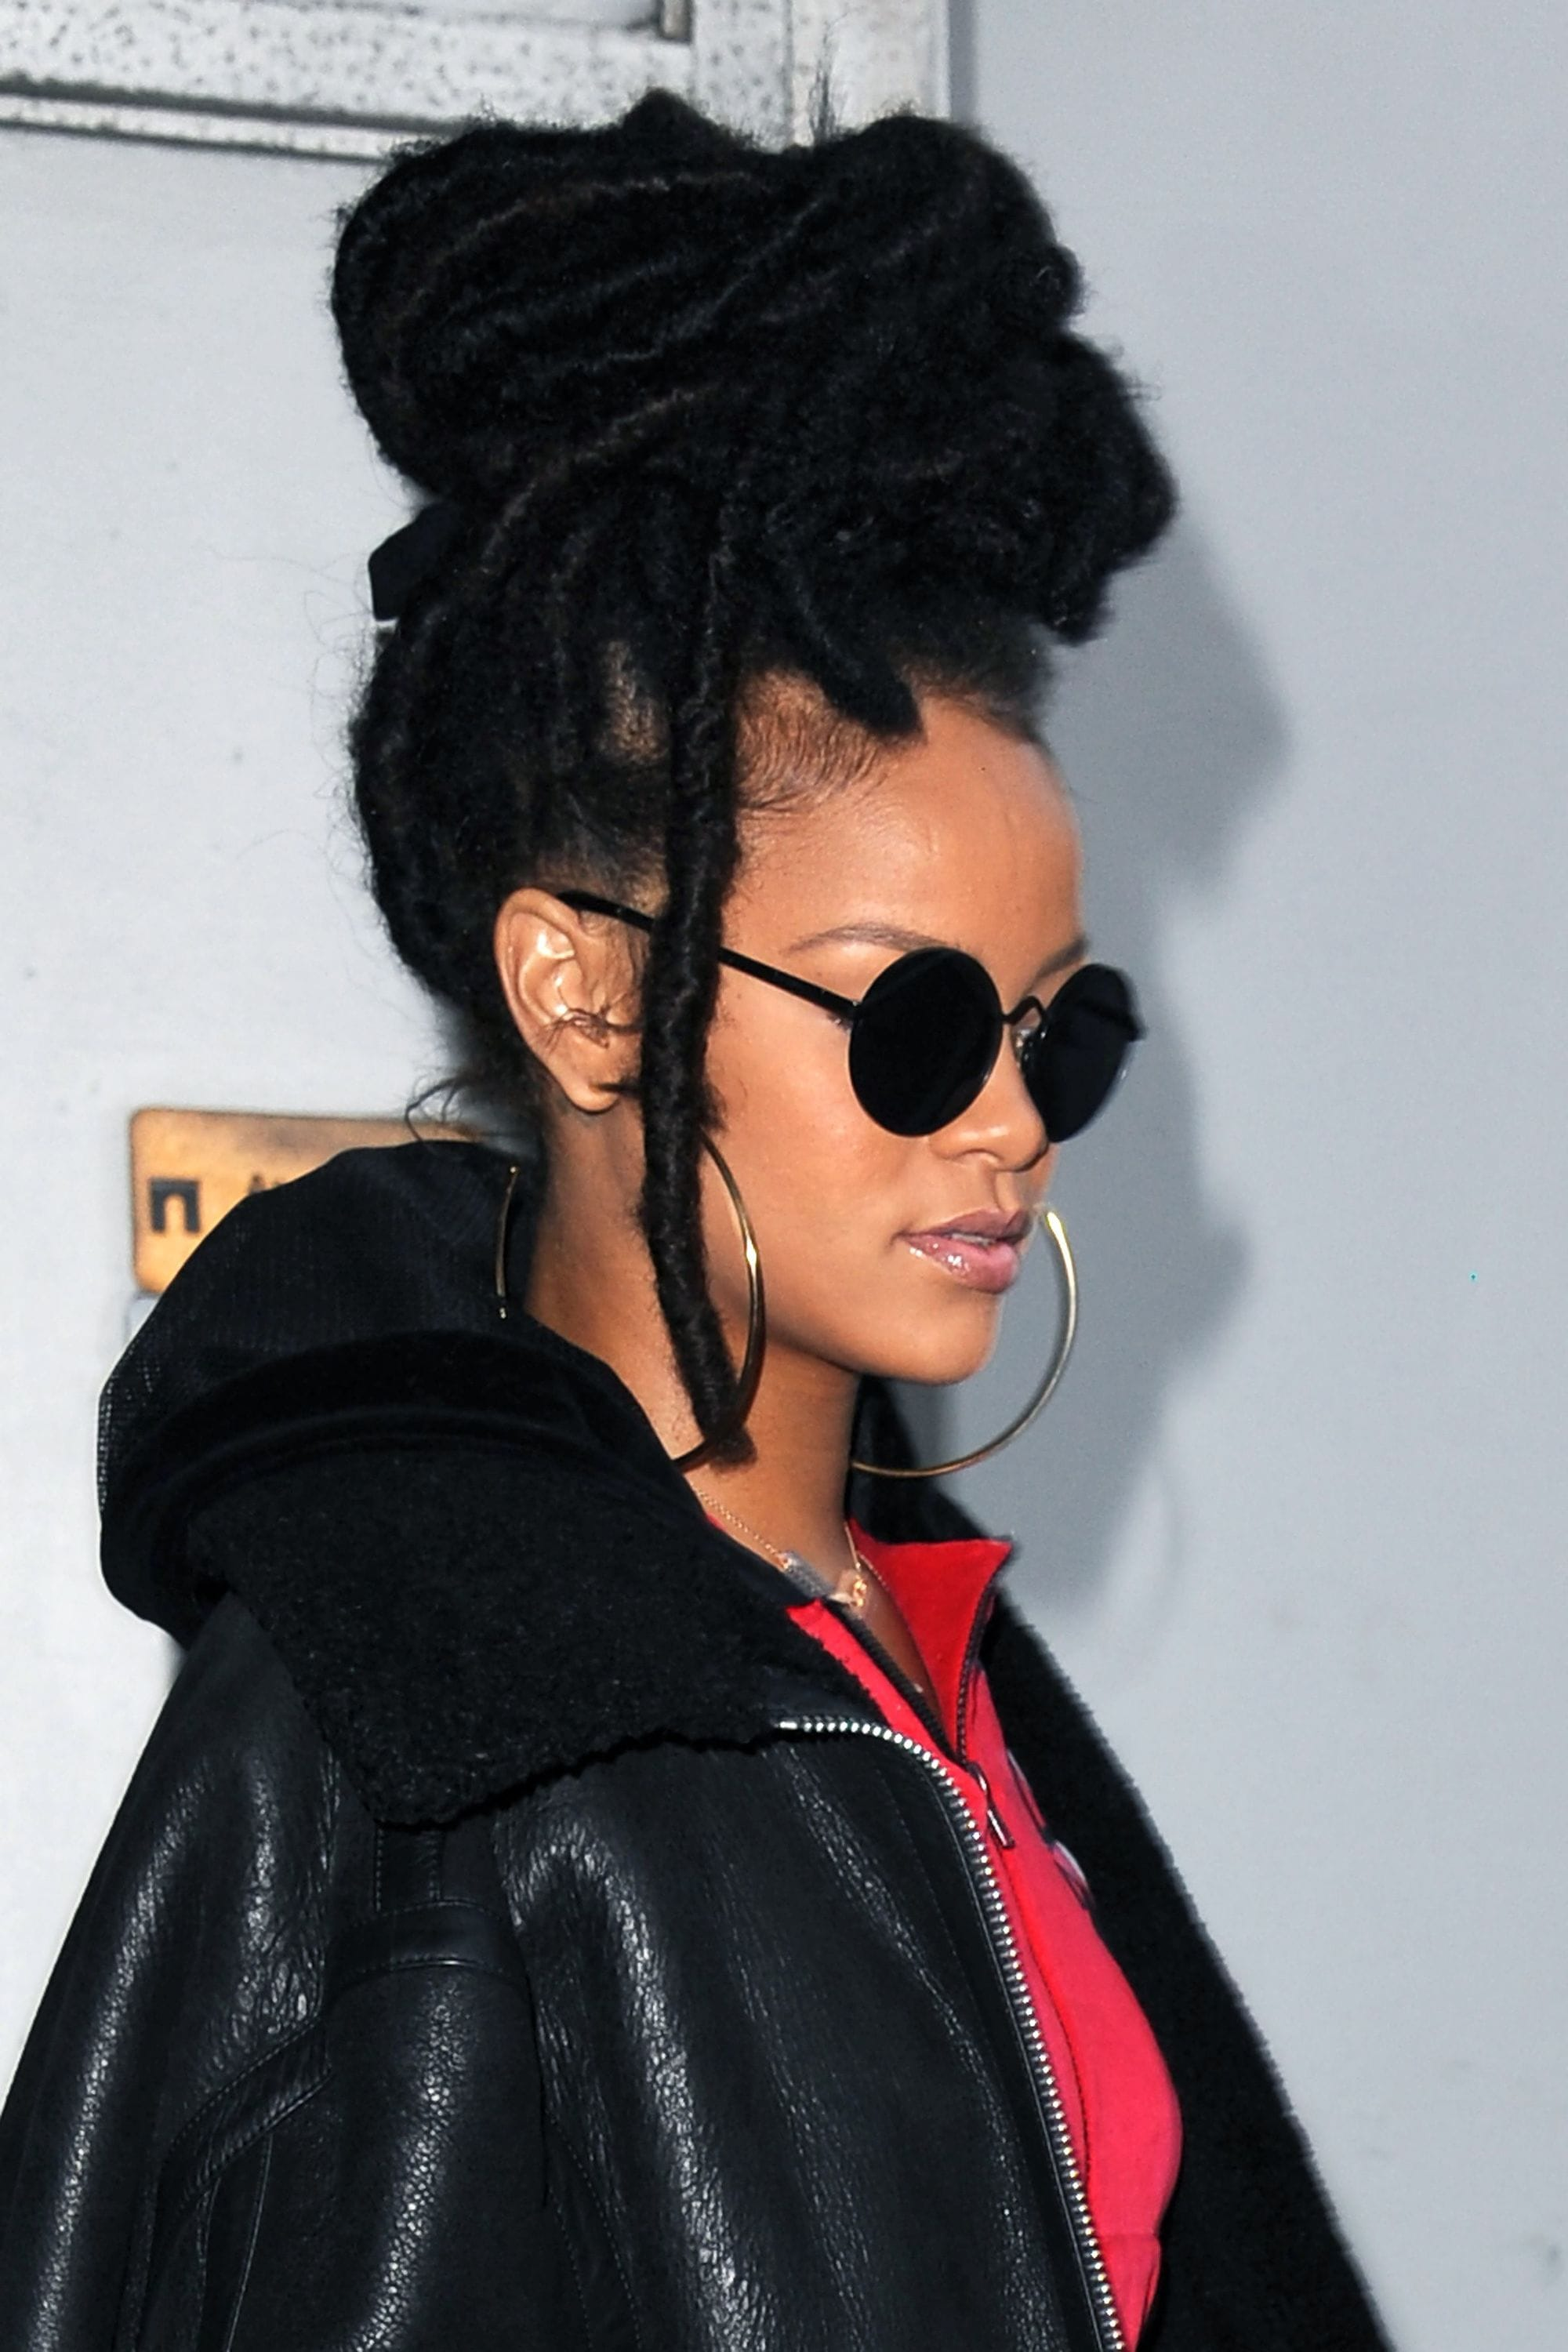 close up shot of rihanna with faux dreadlocks hairstyle, fashioned into a high bun updo, wearing black jacket and sunglasses